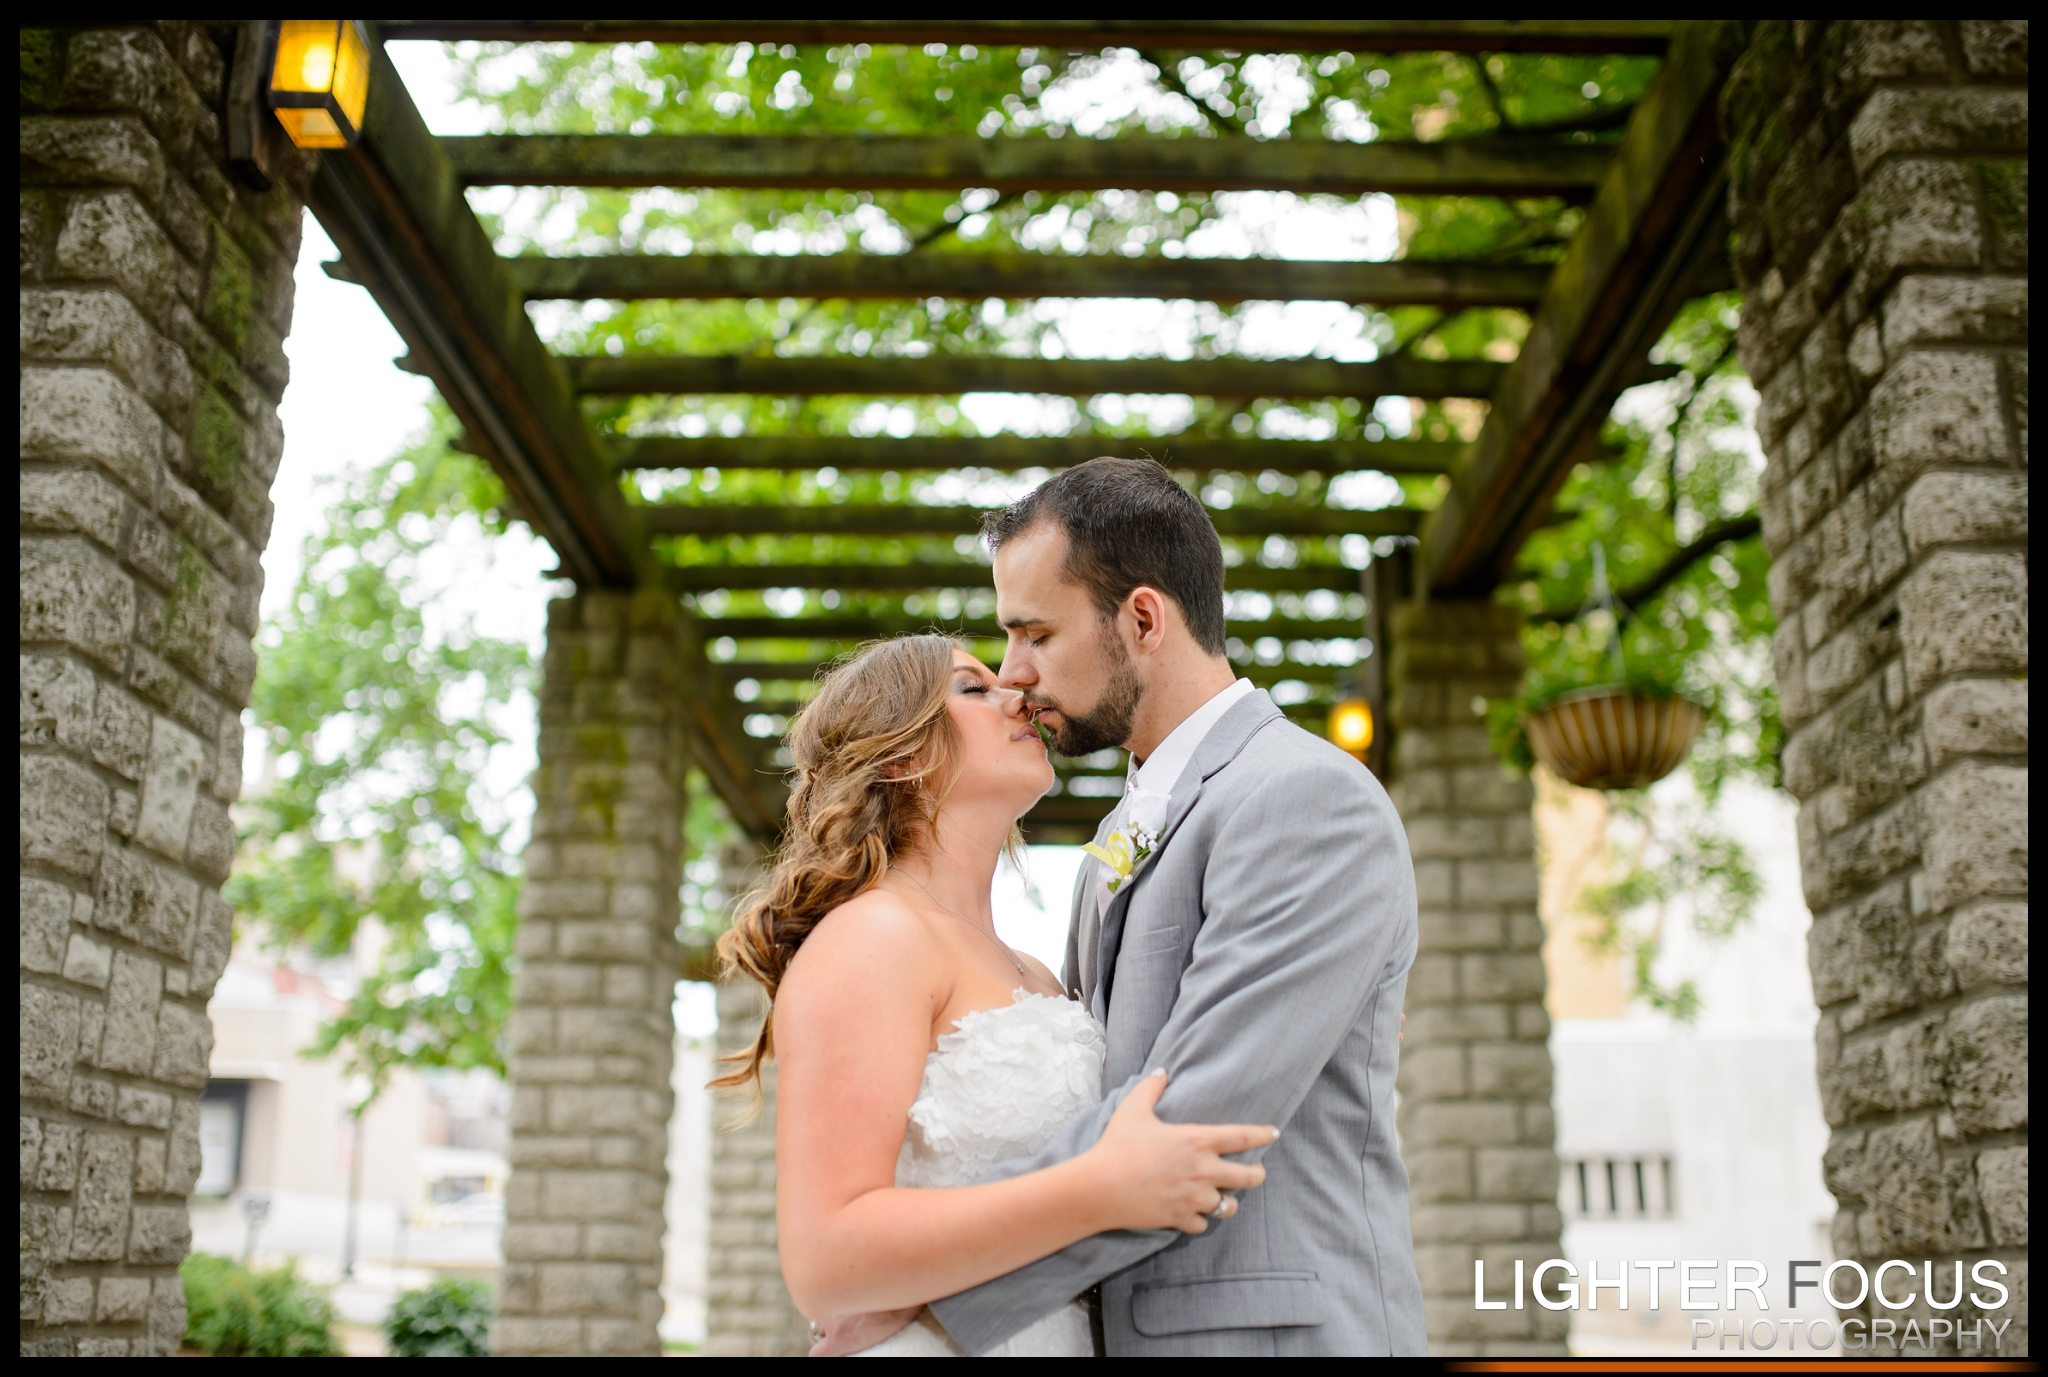 Shaun & Lauren | Jefferson City wedding at the Governor's Gardens | Lighter Focus Photography